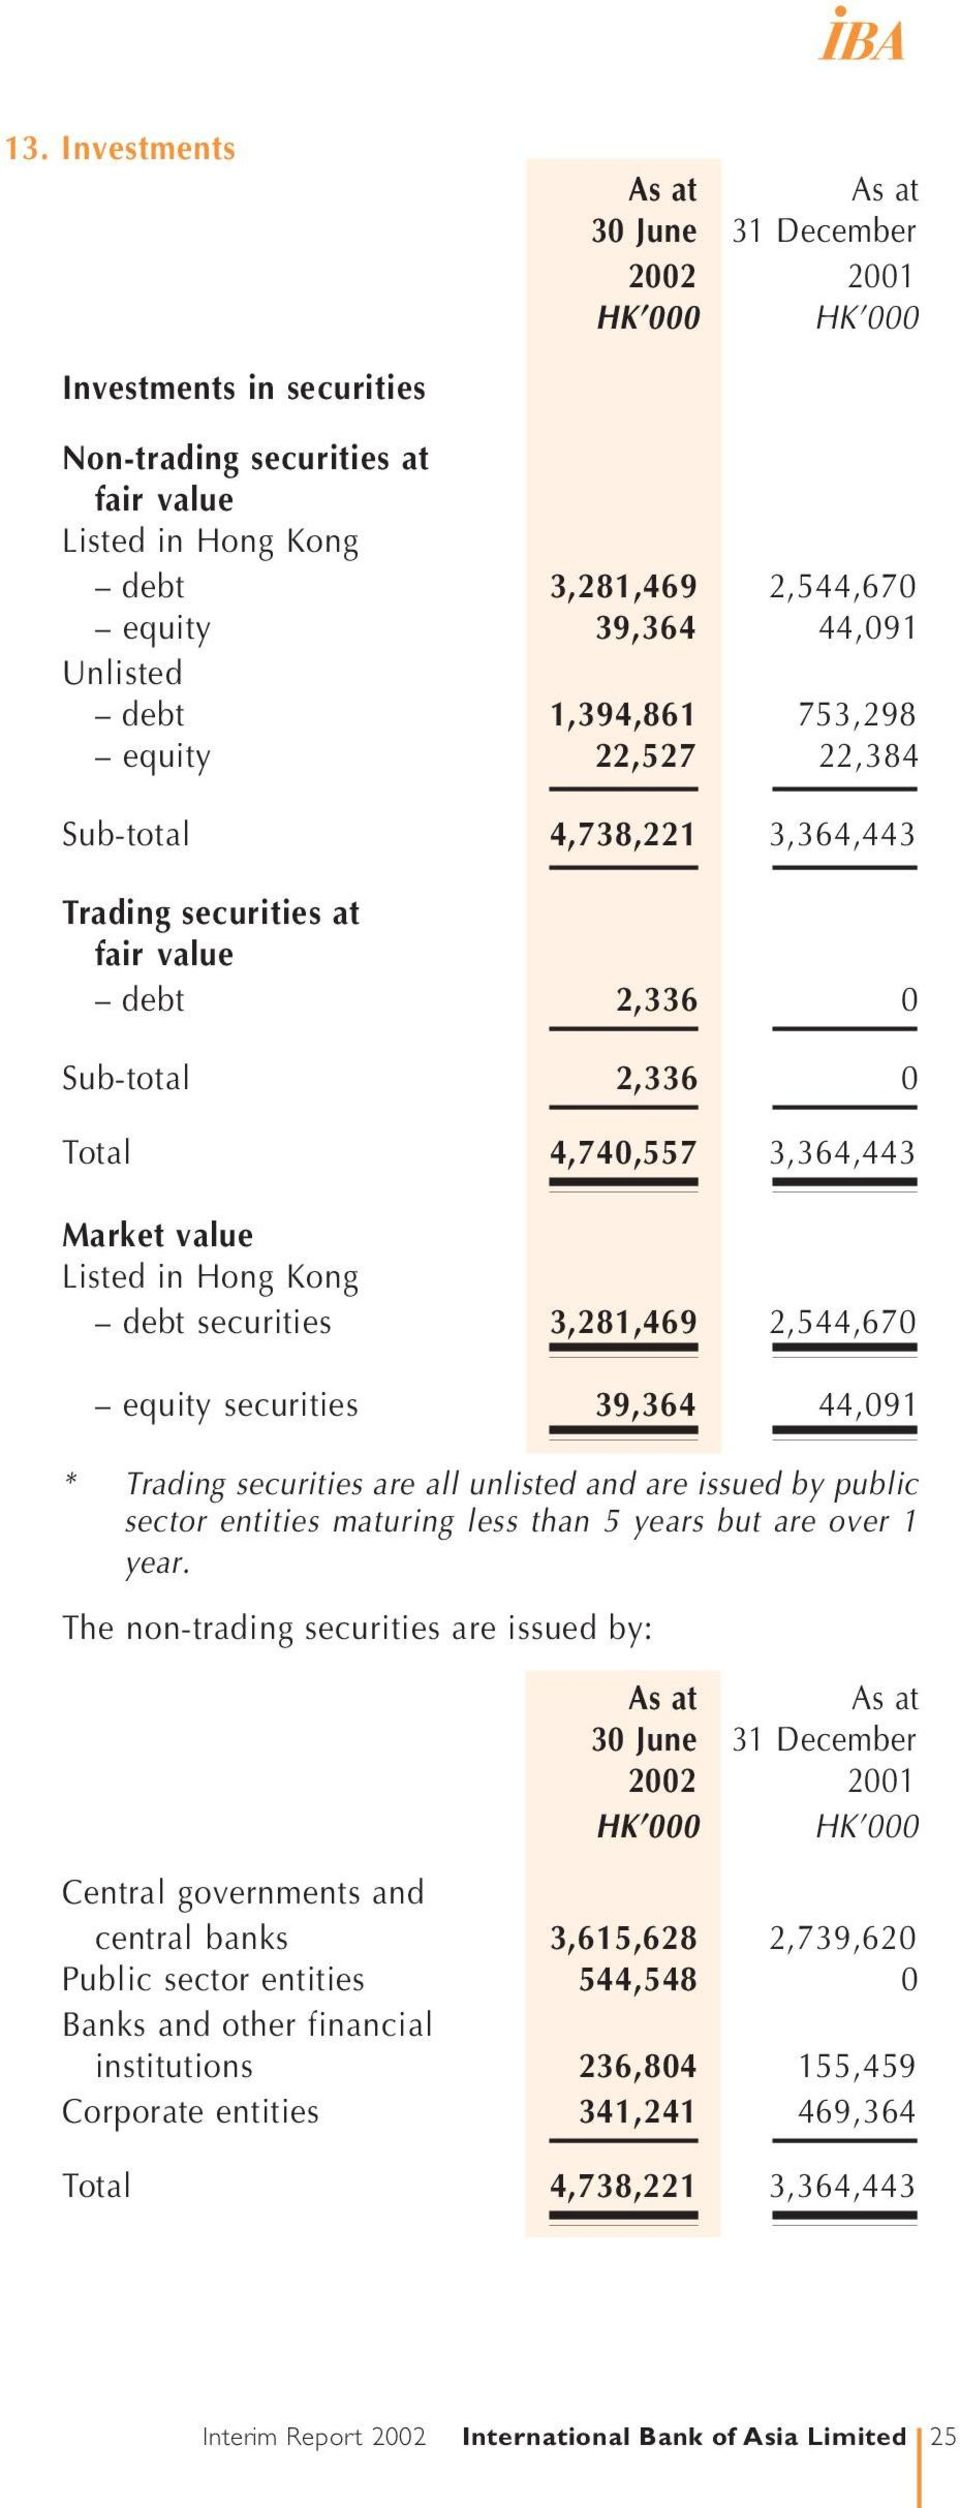 securities 39,364 44,091 * Trading securities are all unlisted and are issued by public sector entities maturing less than 5 years but are over 1 year.